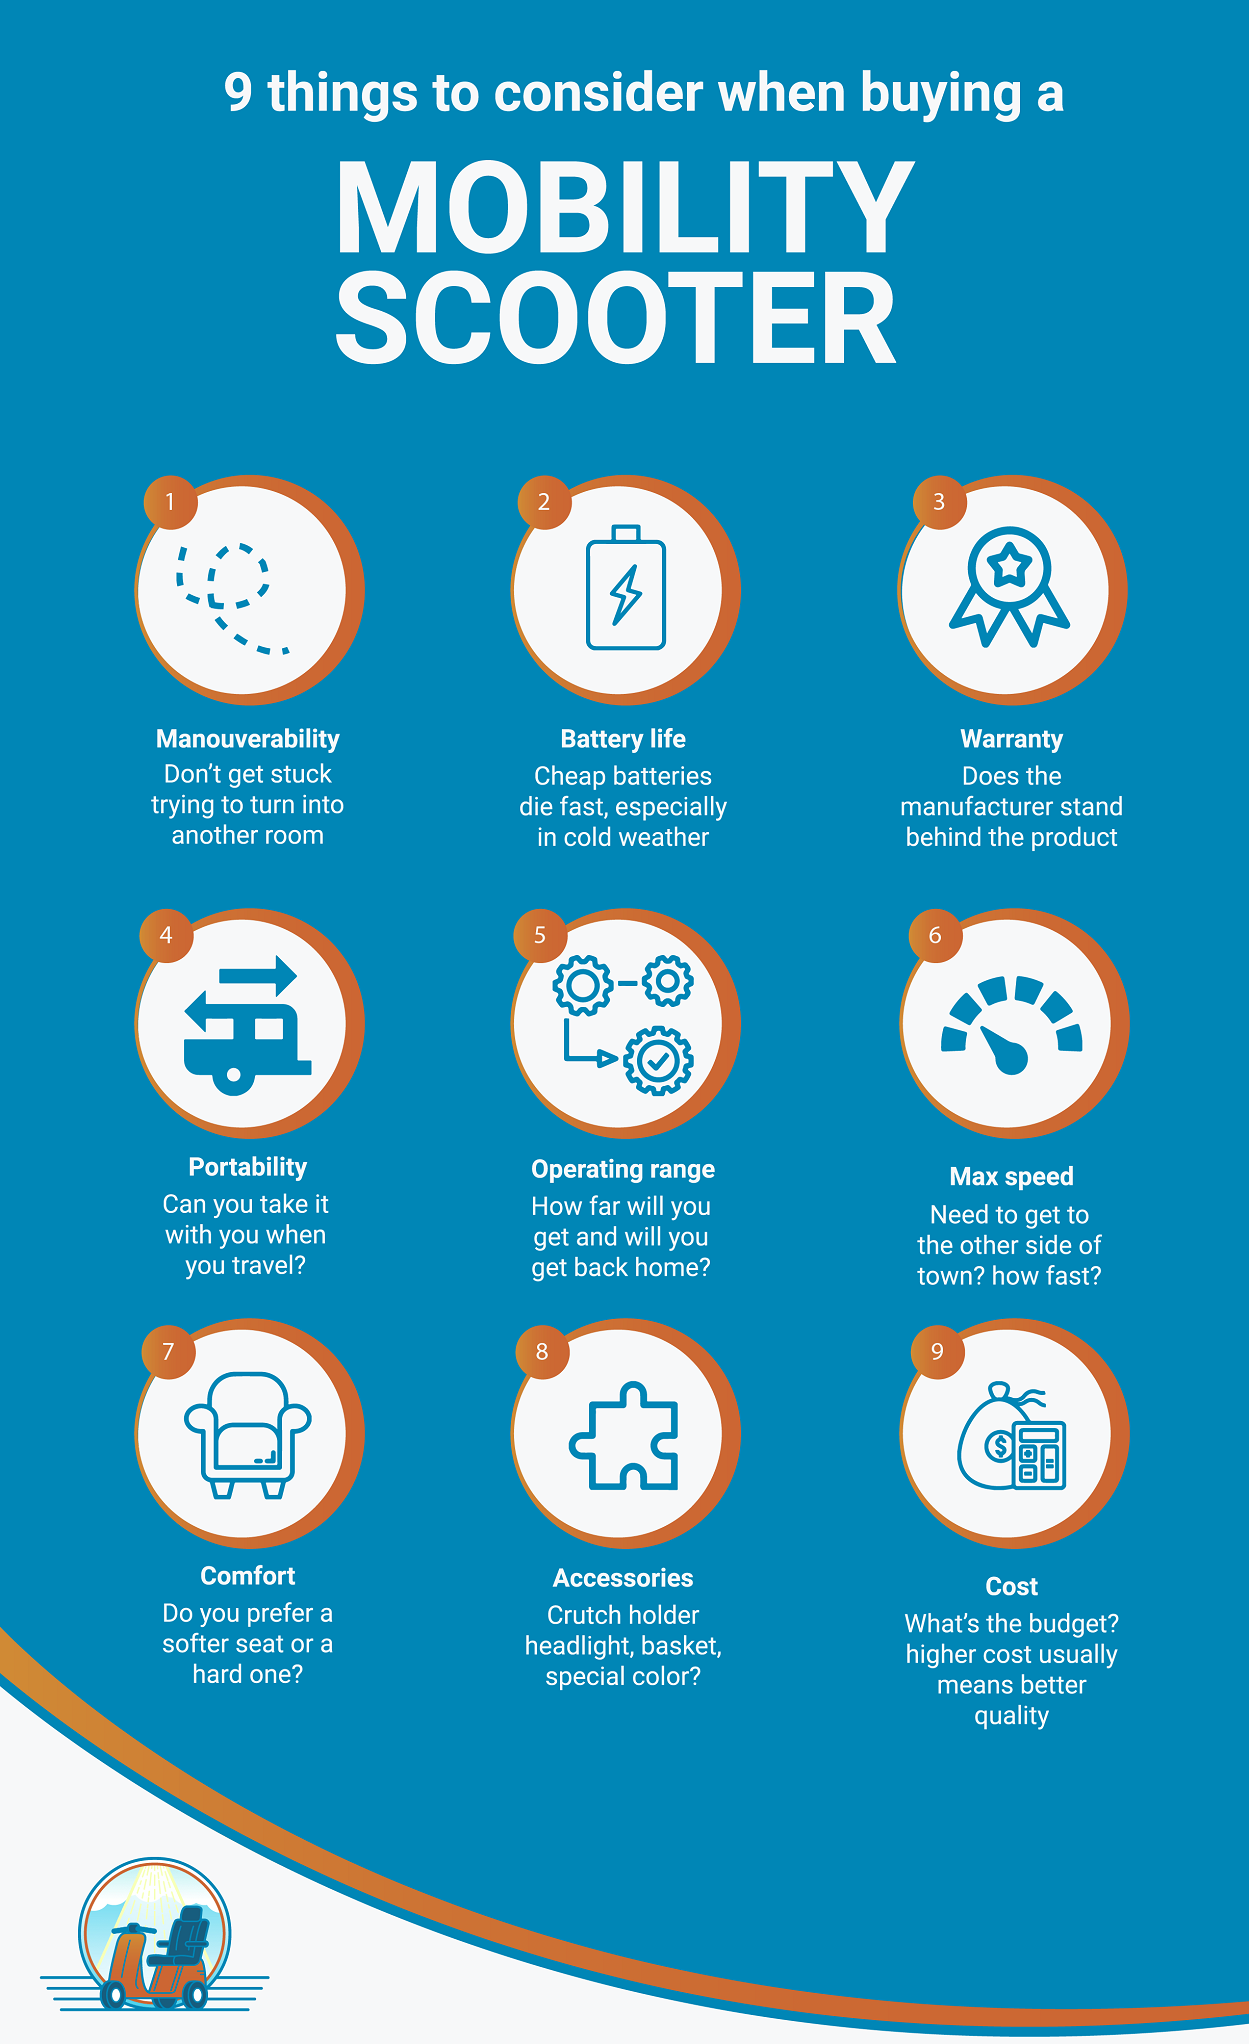 9 things to consider when buying a mobility scooter 2019 #infographic